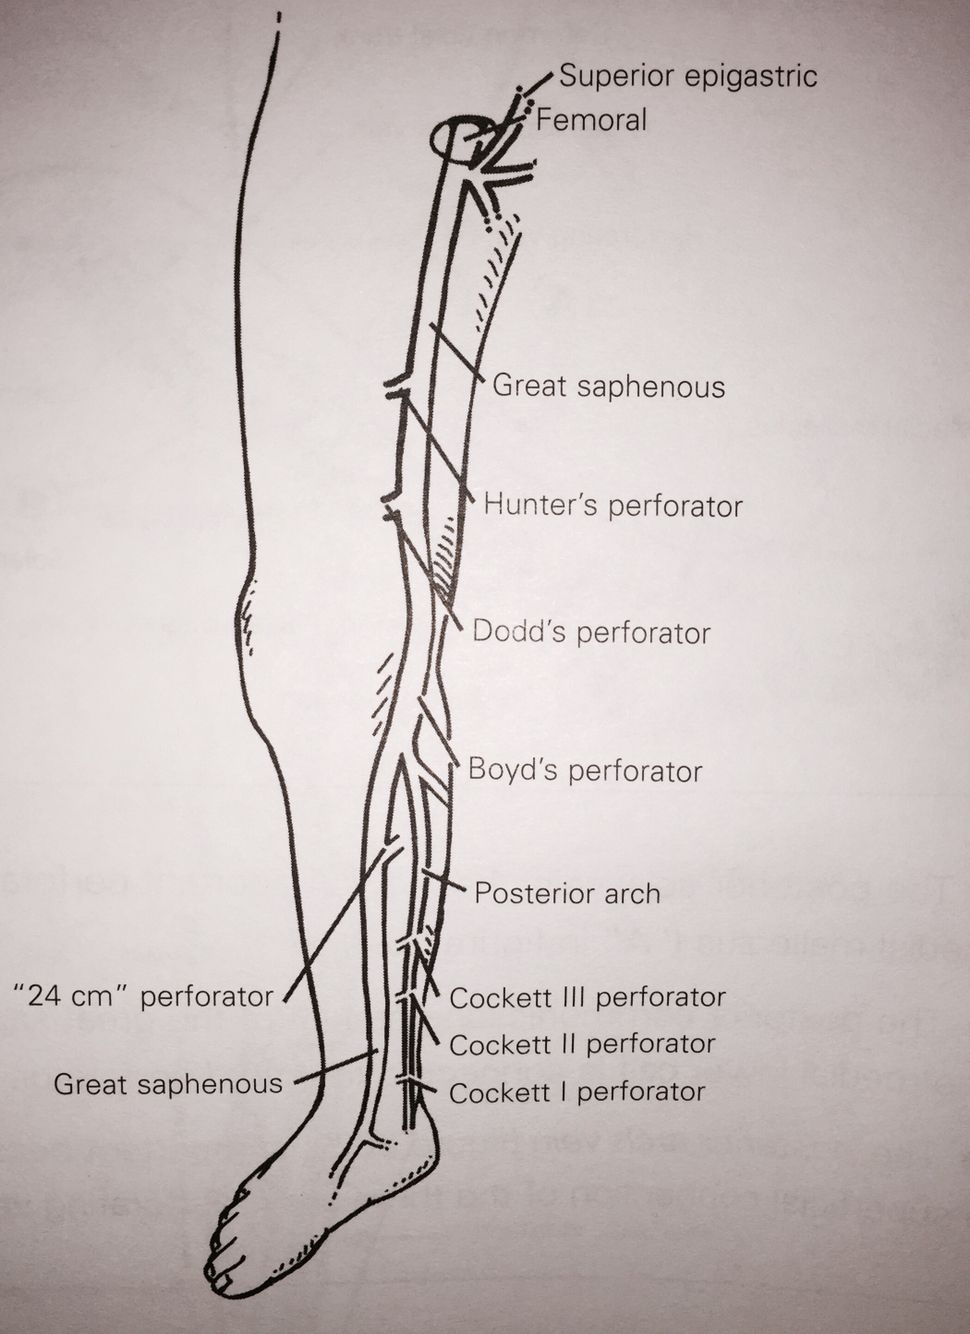 Gsv Greater Saphenous Vein And Canals Us Venous Vascular